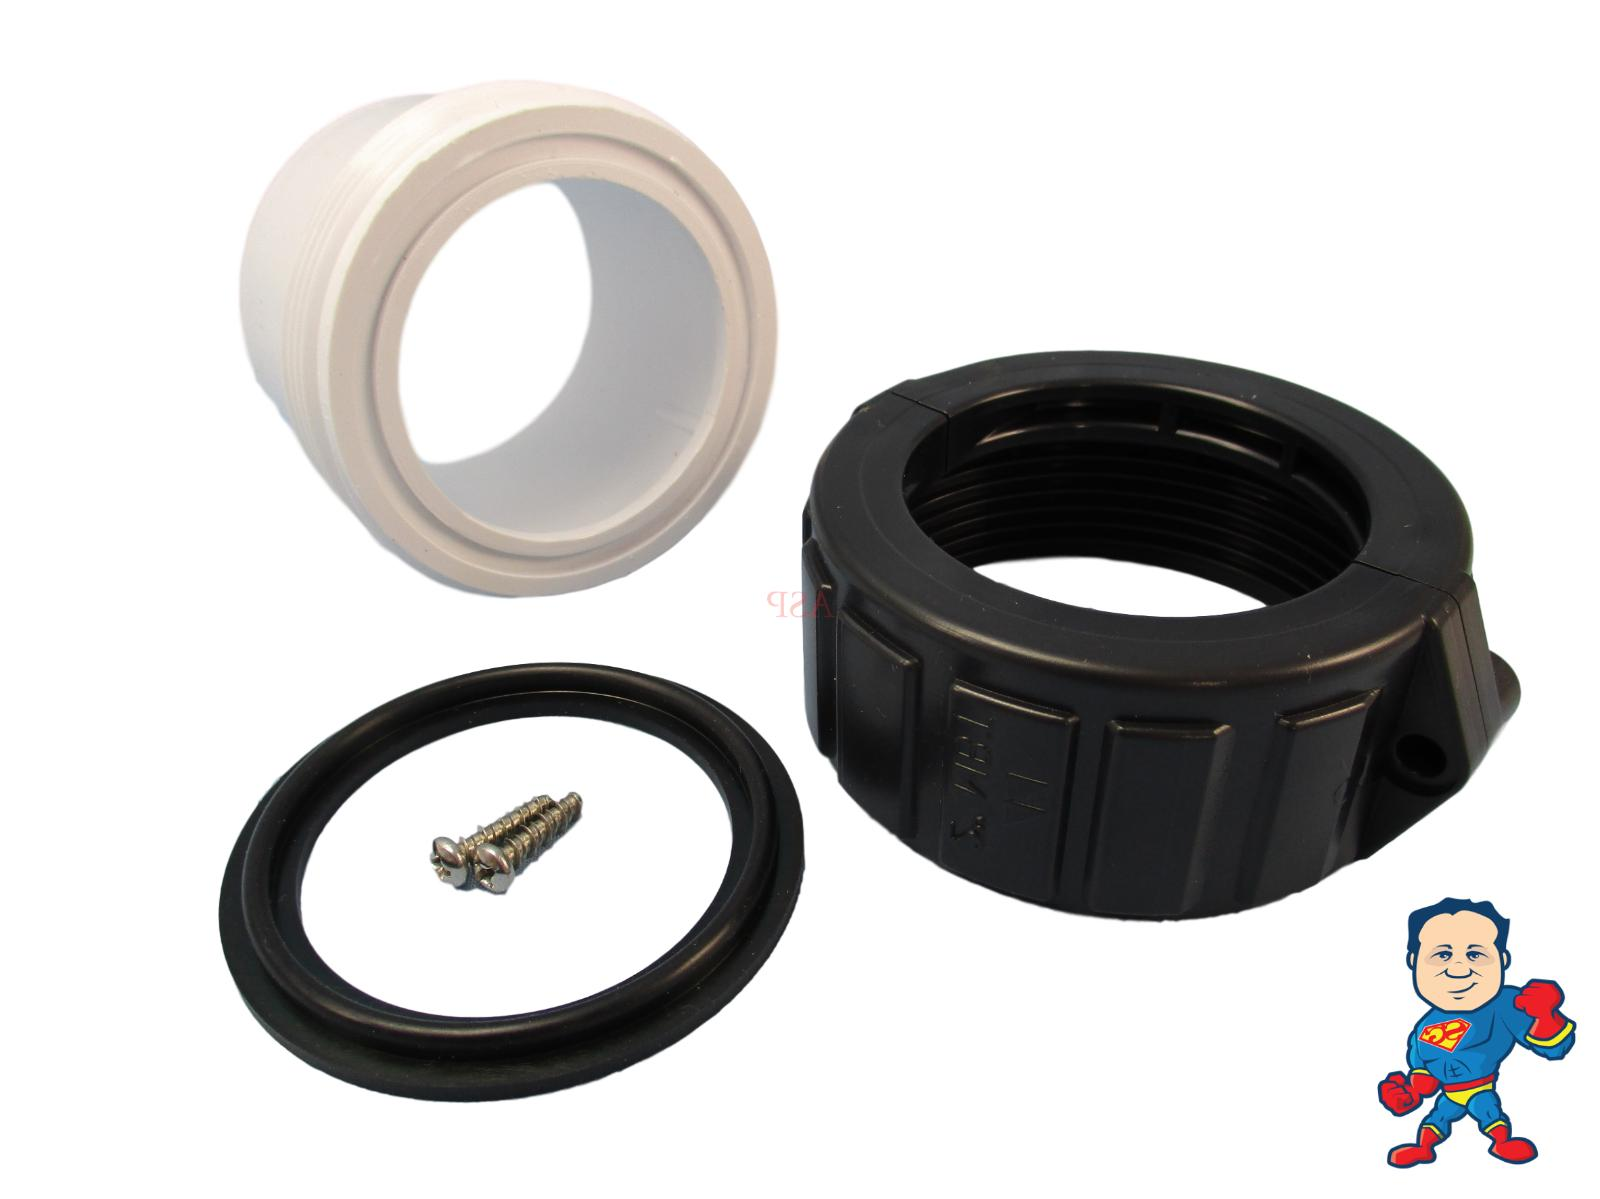 Hot Tub Spa Split Nut Kit for with Gasket To